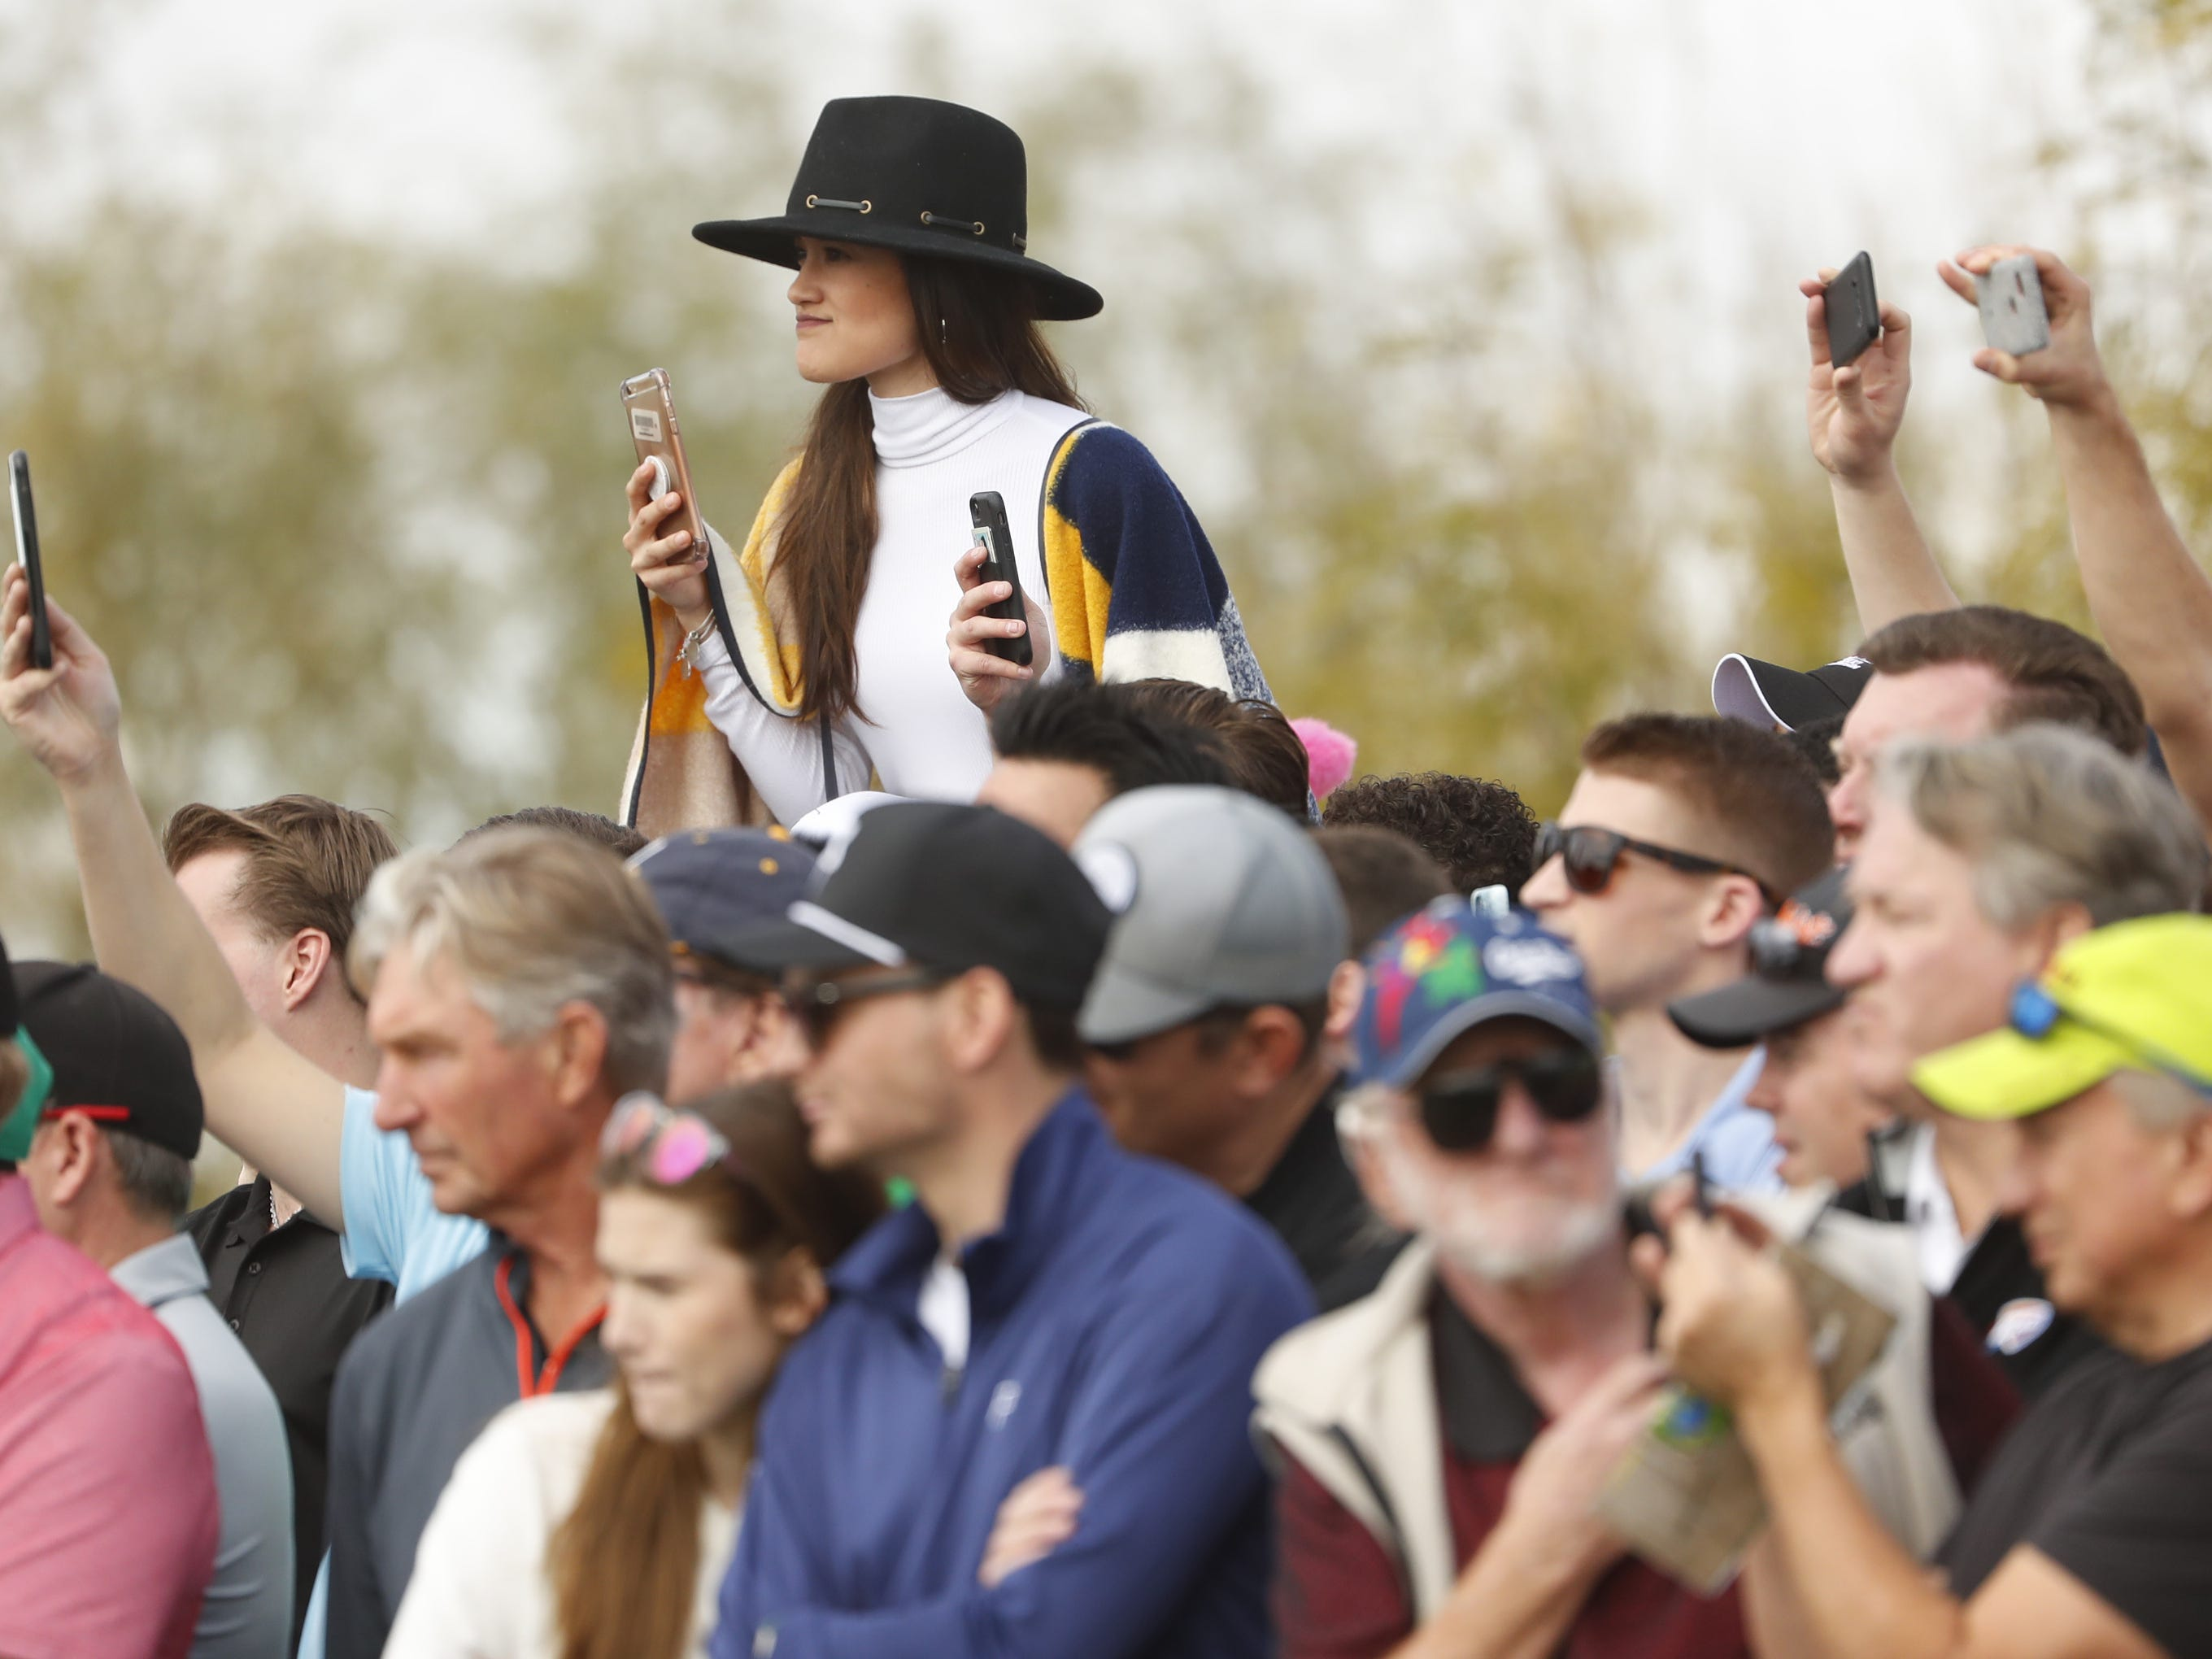 A woman looks at golfers teeing off on the 8th hole from atop her friends shoulders during the third round of the Waste Management Phoenix Open at TPC Scottsdale in Scottsdale, Ariz. on February 2, 2019.